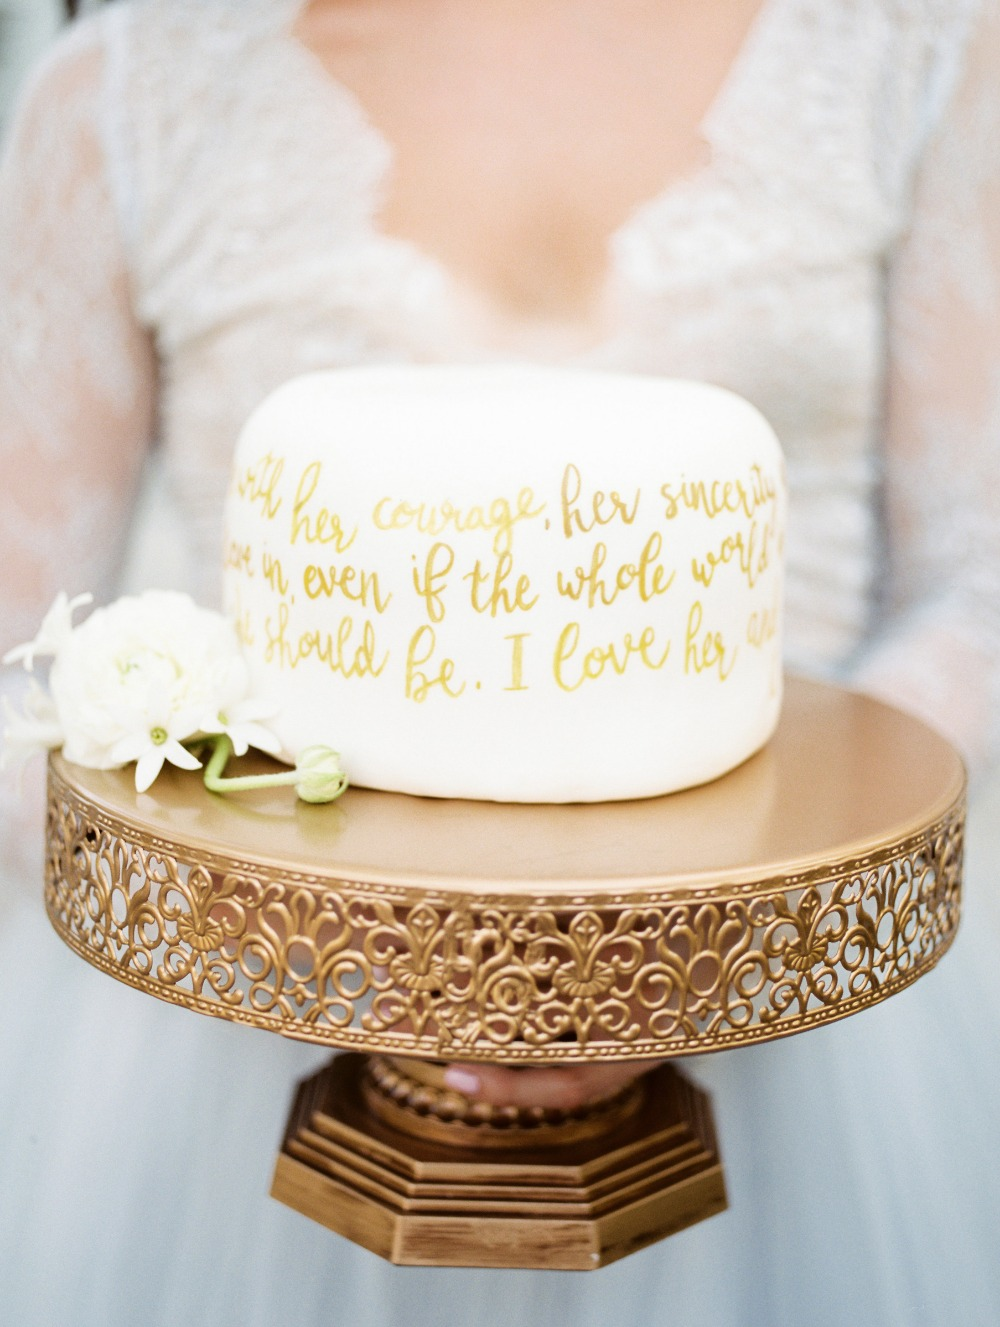 Elopement wedding cake with vows